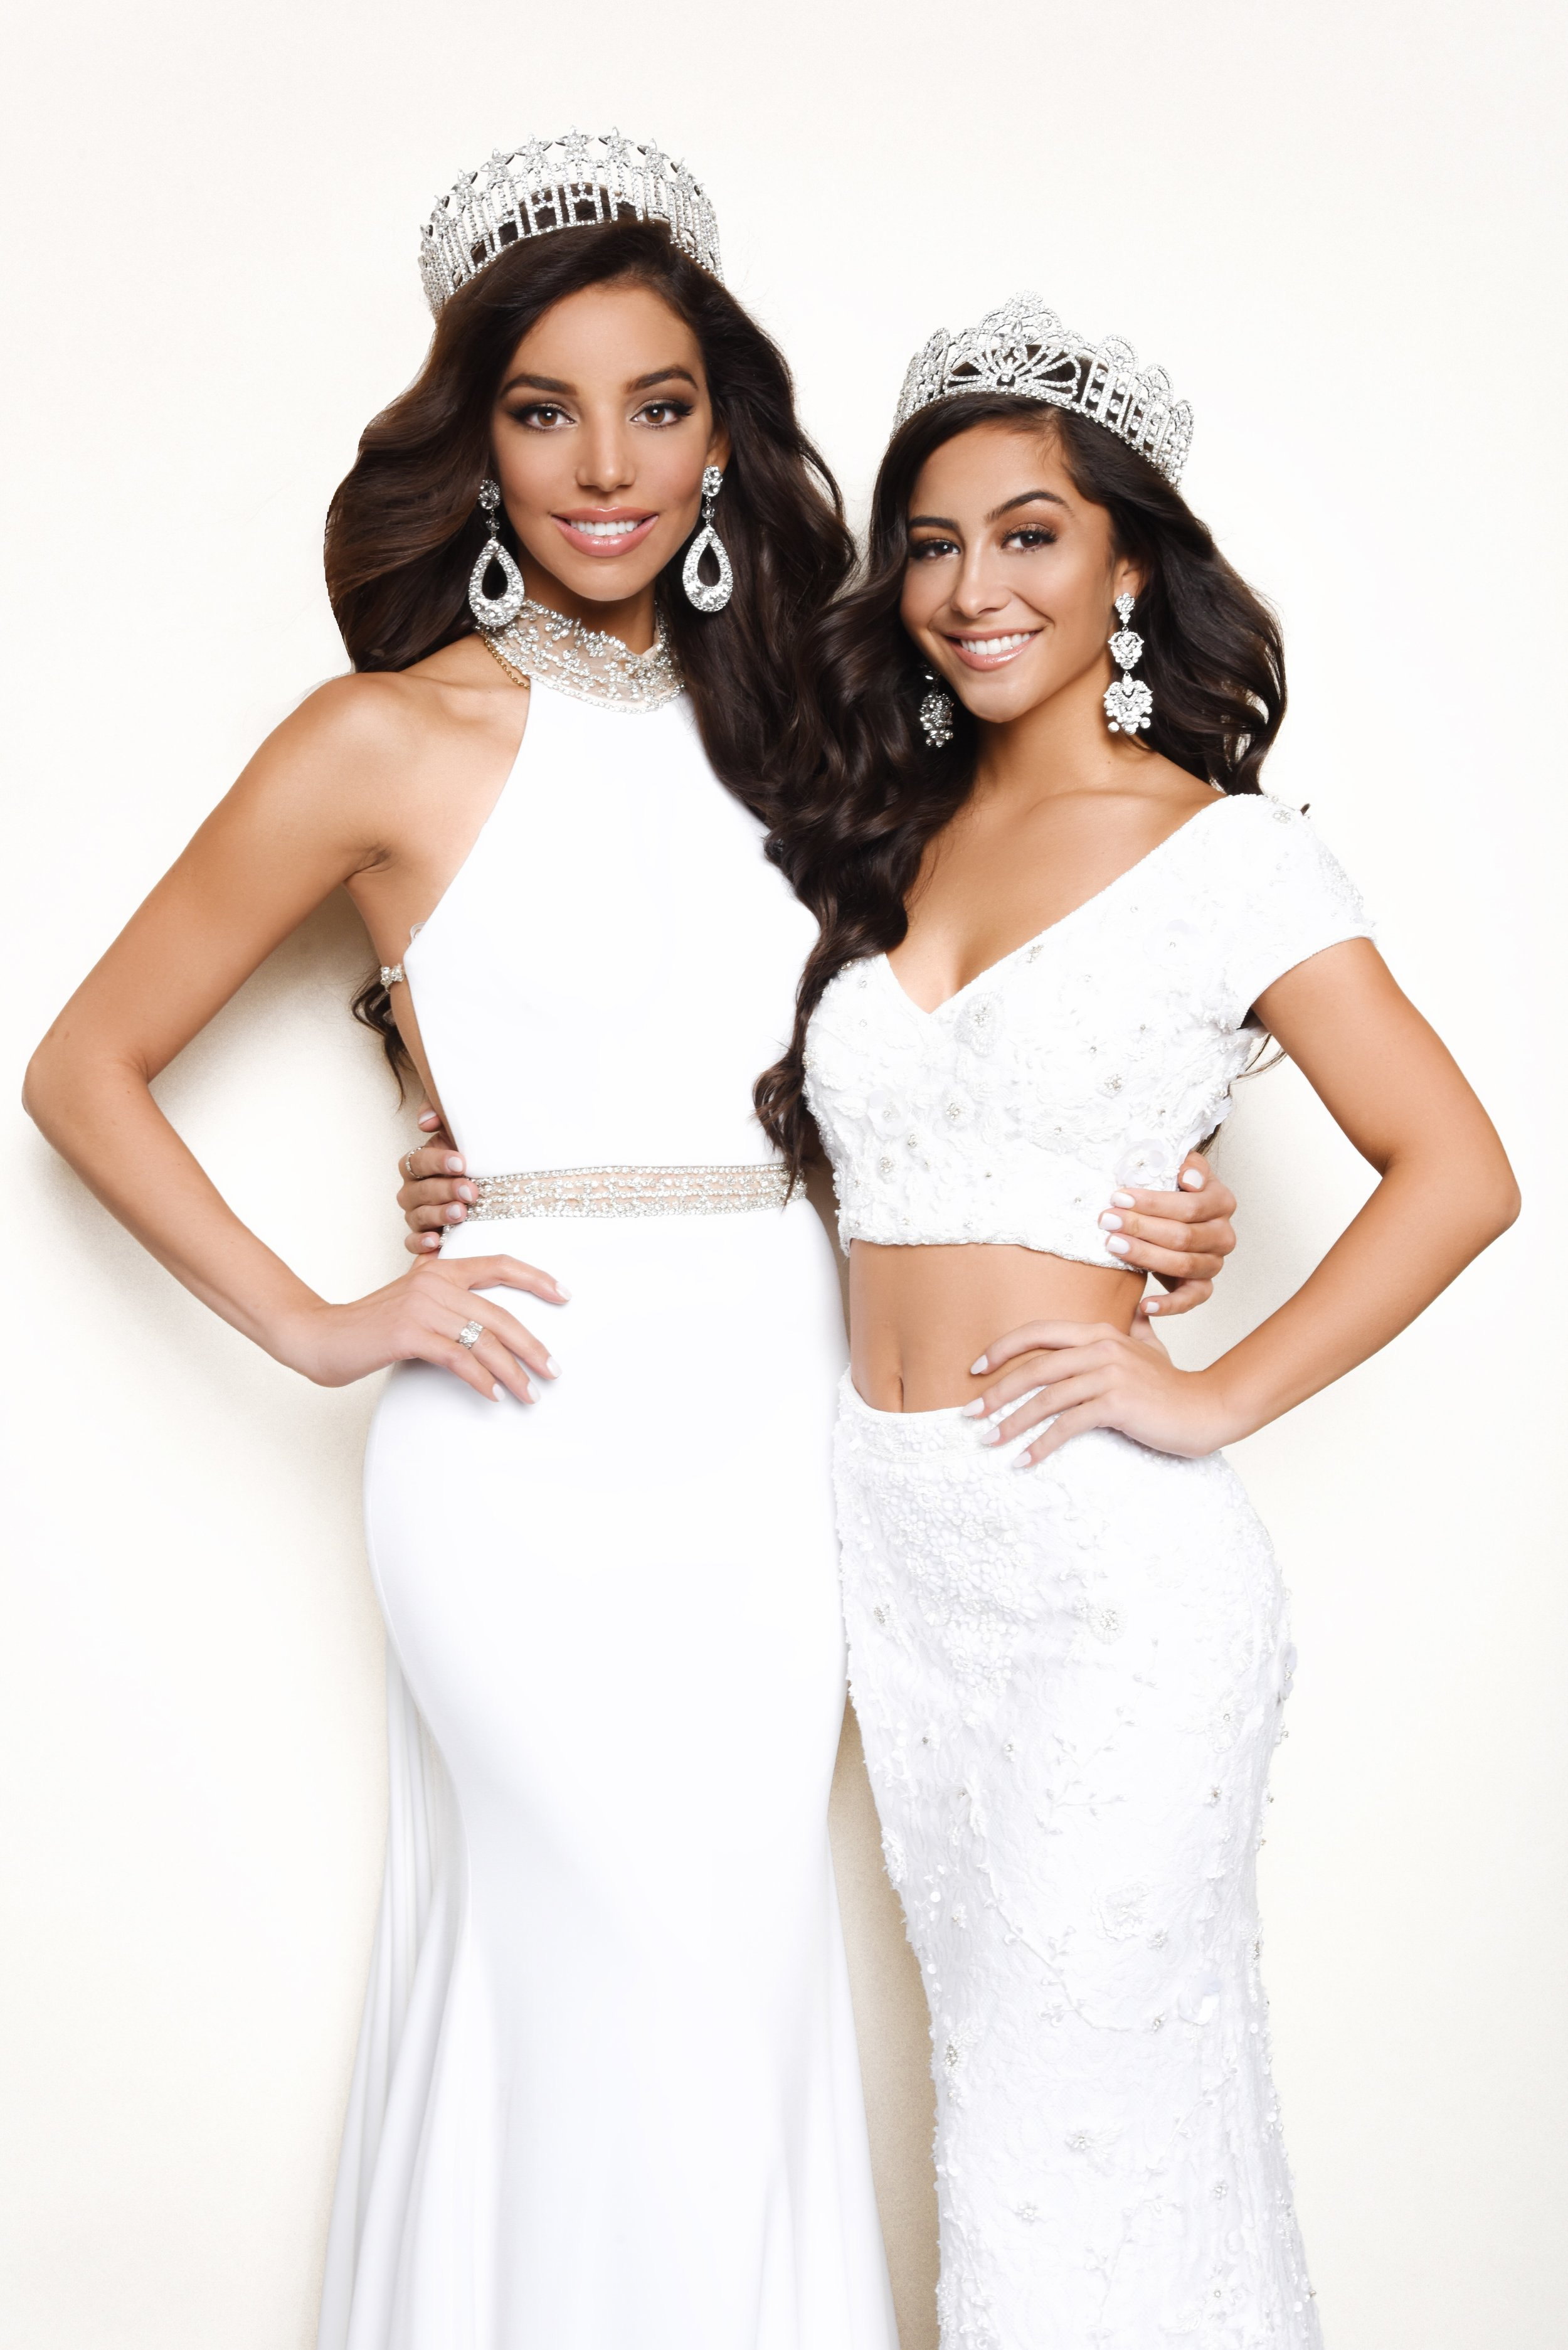 Miss Pennsylvania USA 2019, Kailyn Marie Perez and Miss Pennsylvania Teen USA 2019, Julia Meckley.